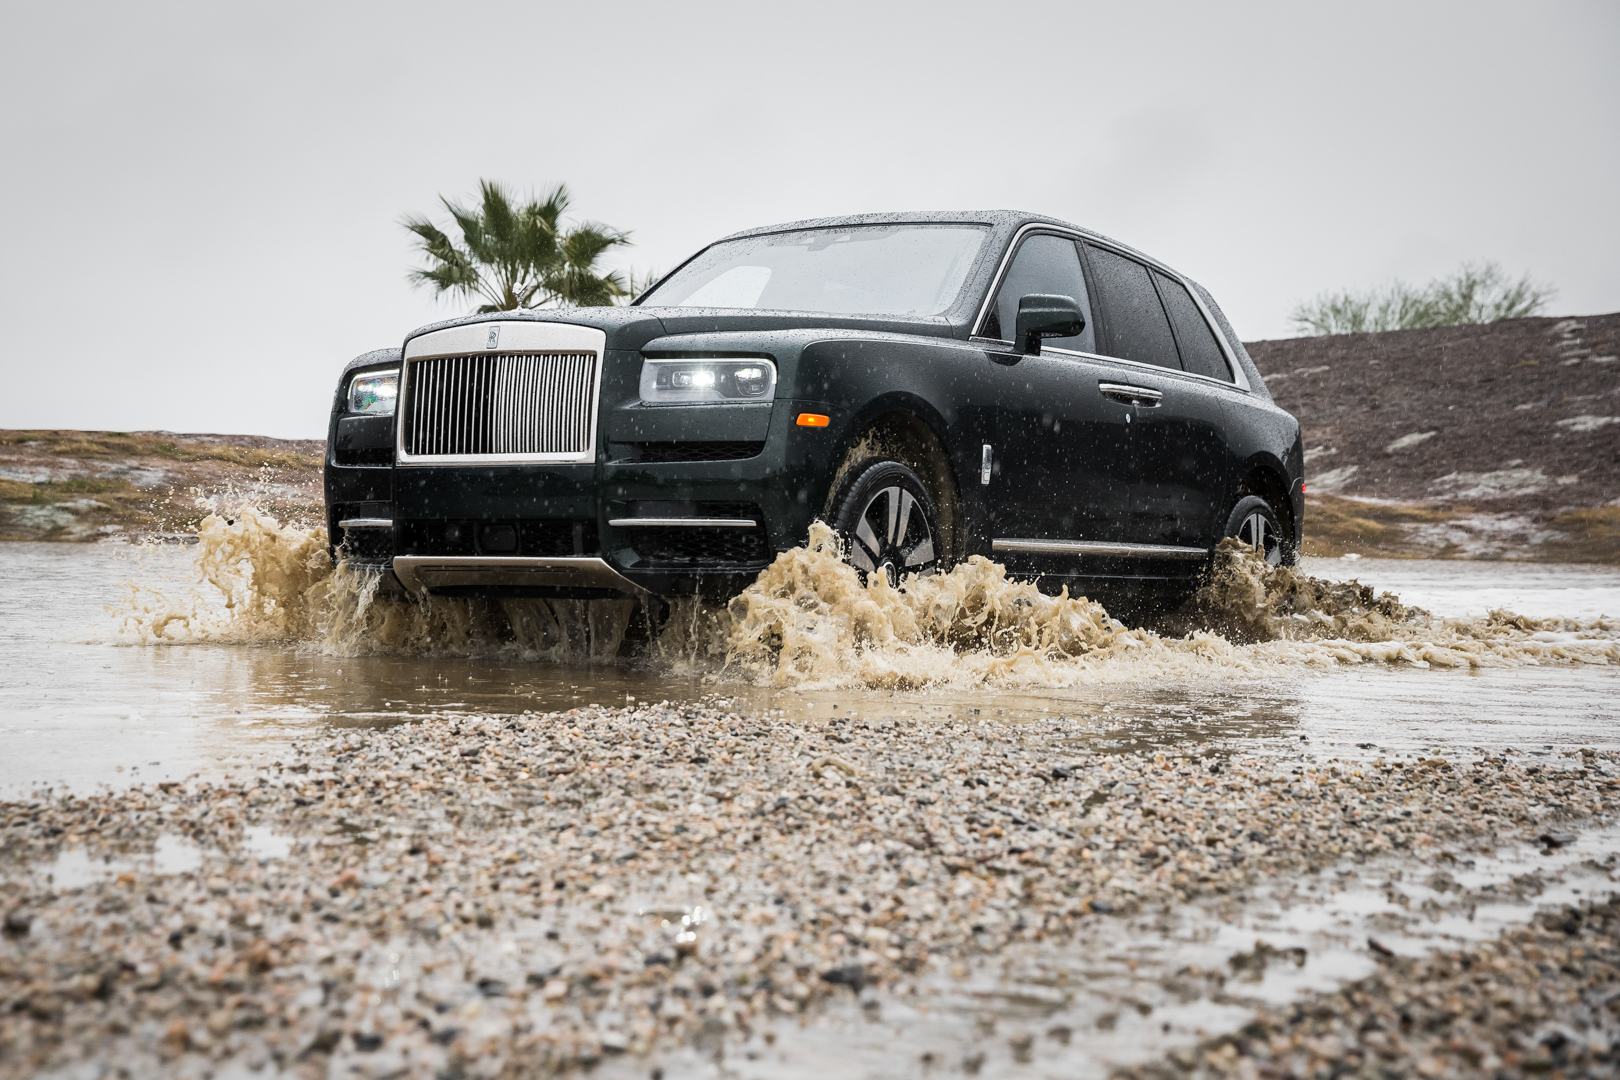 VIDEO: Can a Rolls Royce Cullinan actually go off road?